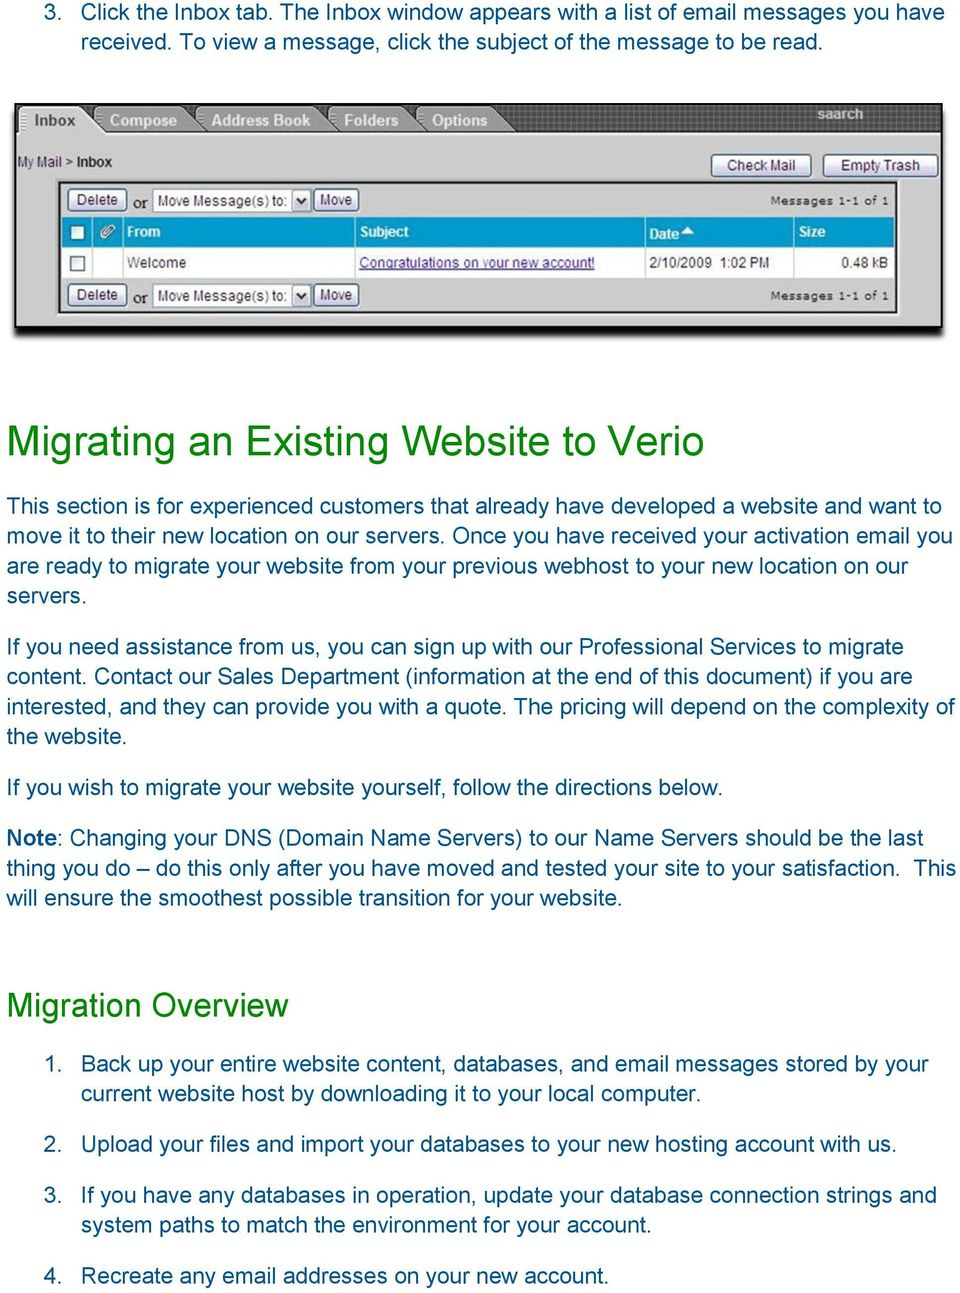 Once you have received your activation email you are ready to migrate your website from your previous webhost to your new location on our servers.